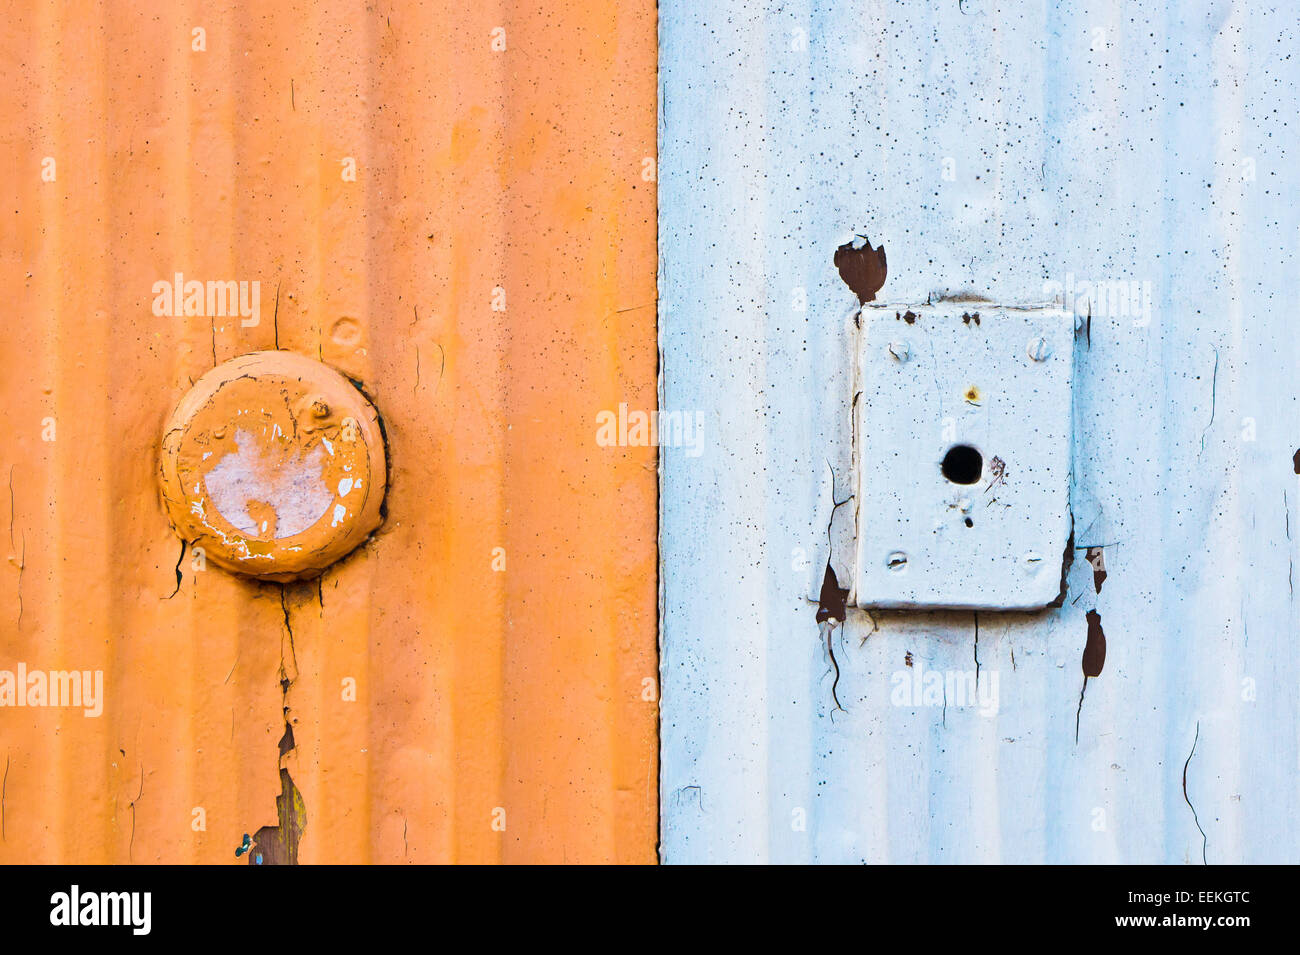 Orange and white metal surfaces as a textured abstract - Stock Image